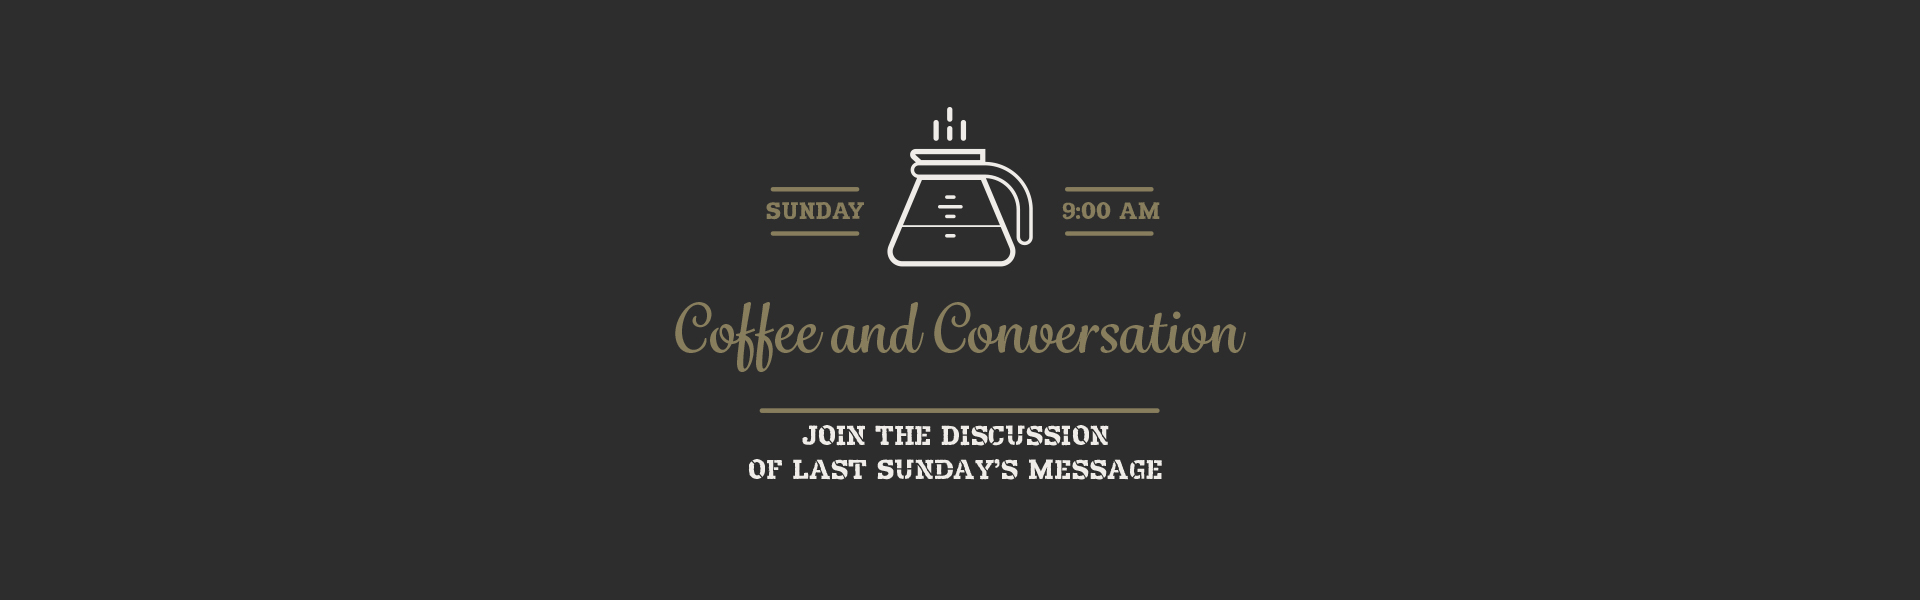 coffee-and-conversation2